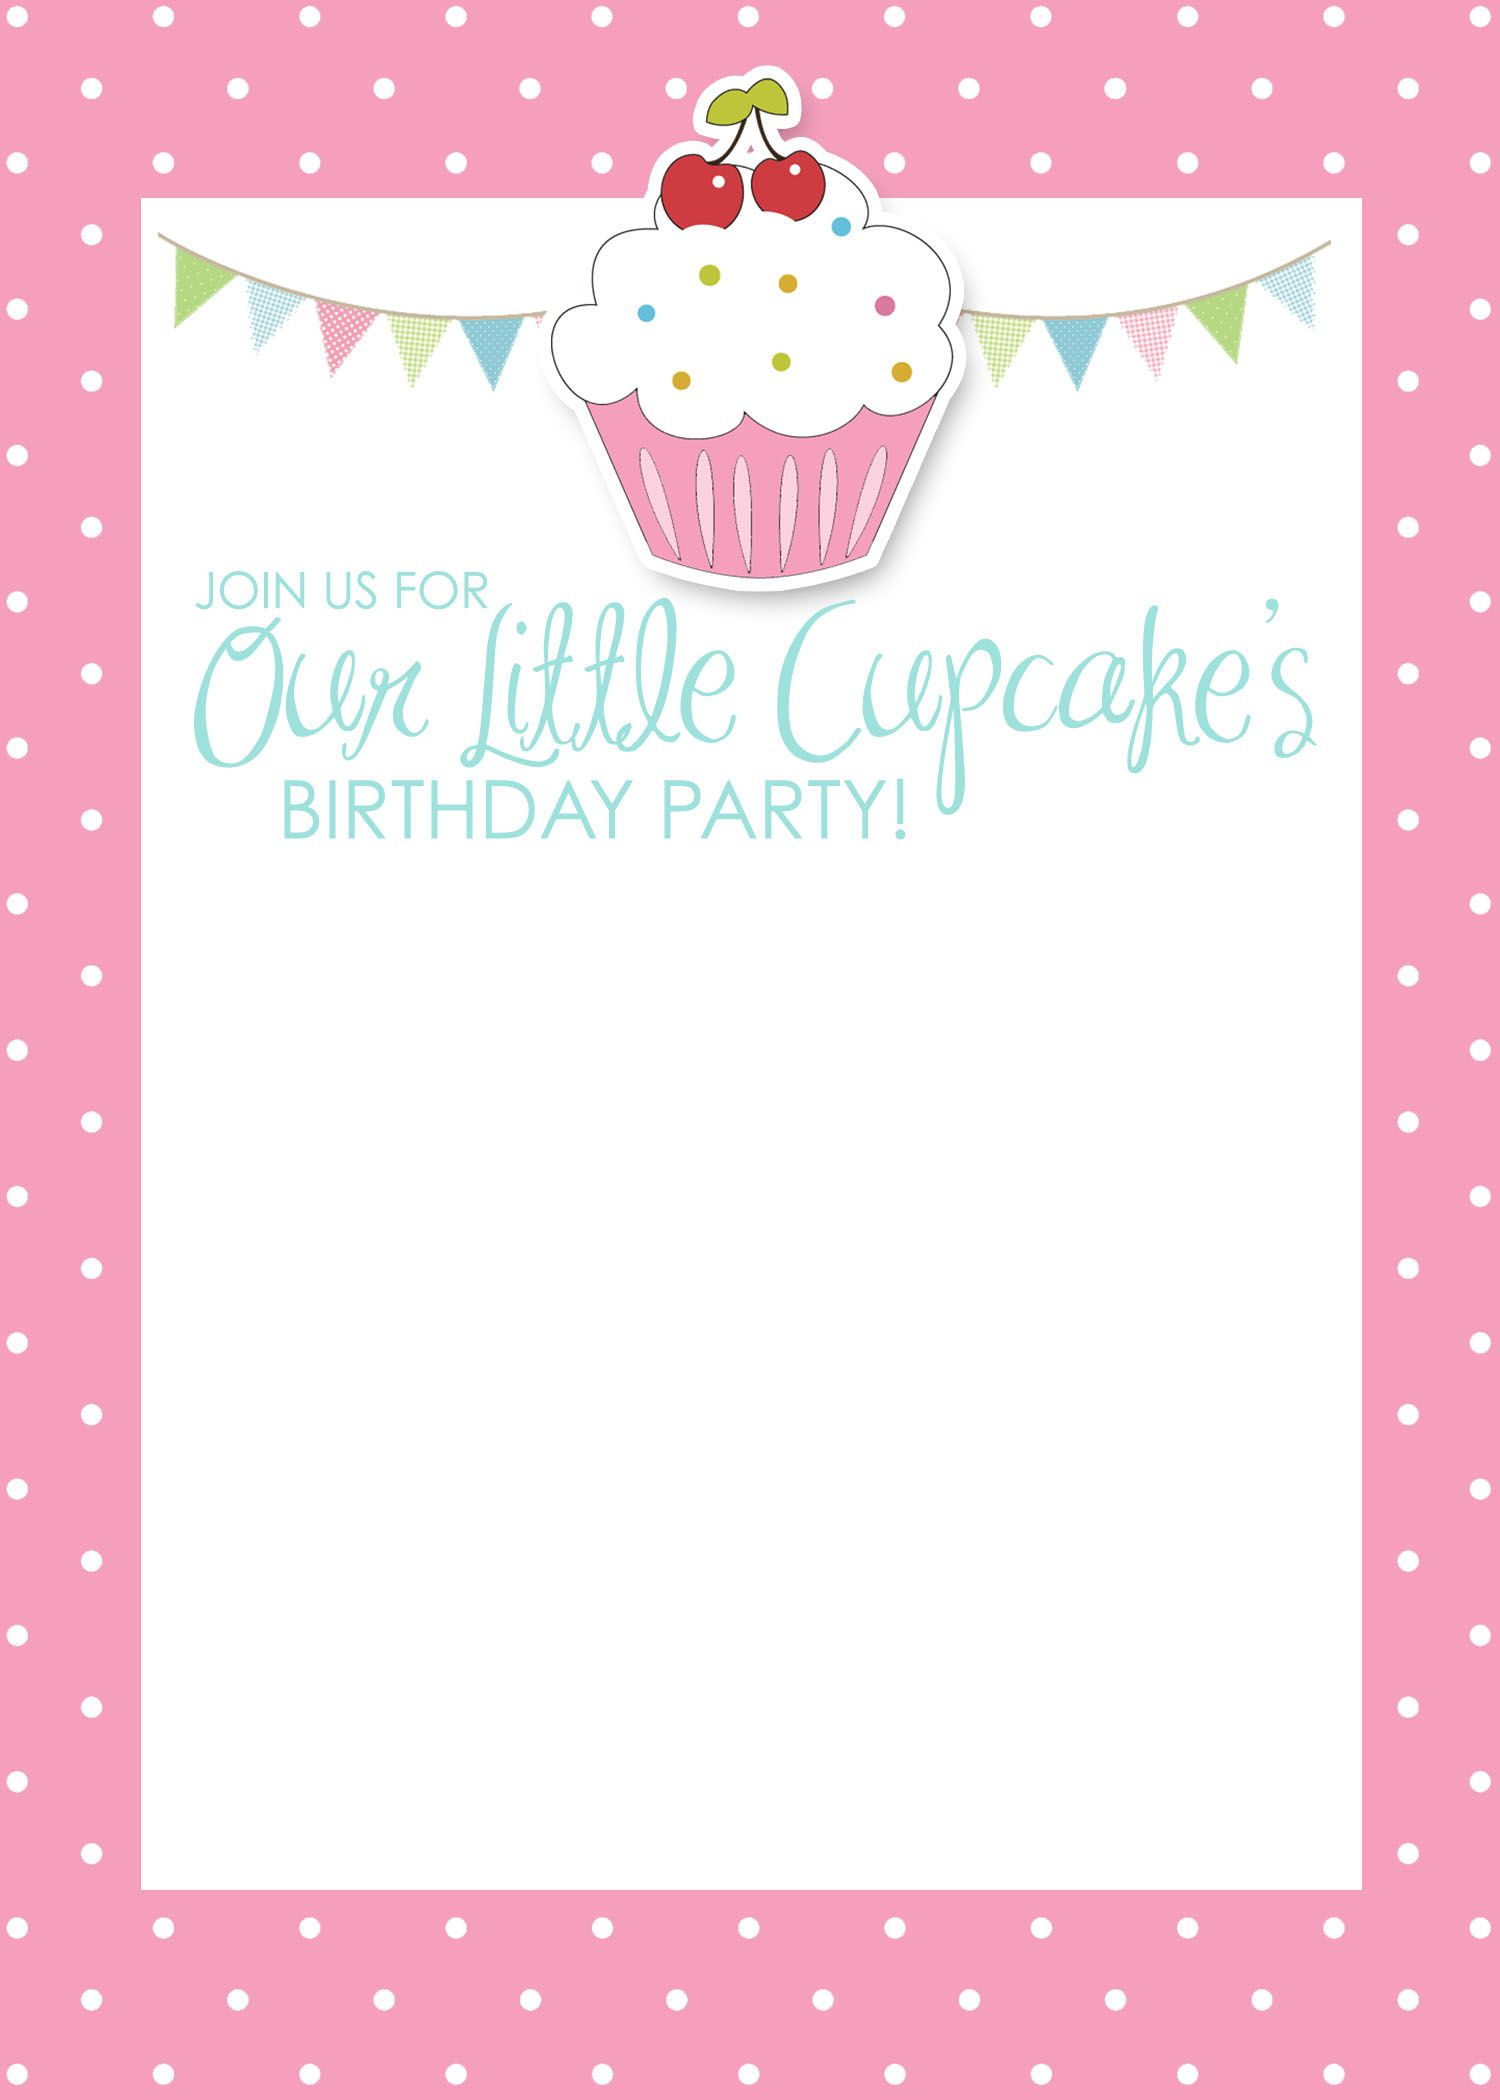 cupcake birthday invitation template ; 9db277ce10b0a7cef4cc8727d2cee450